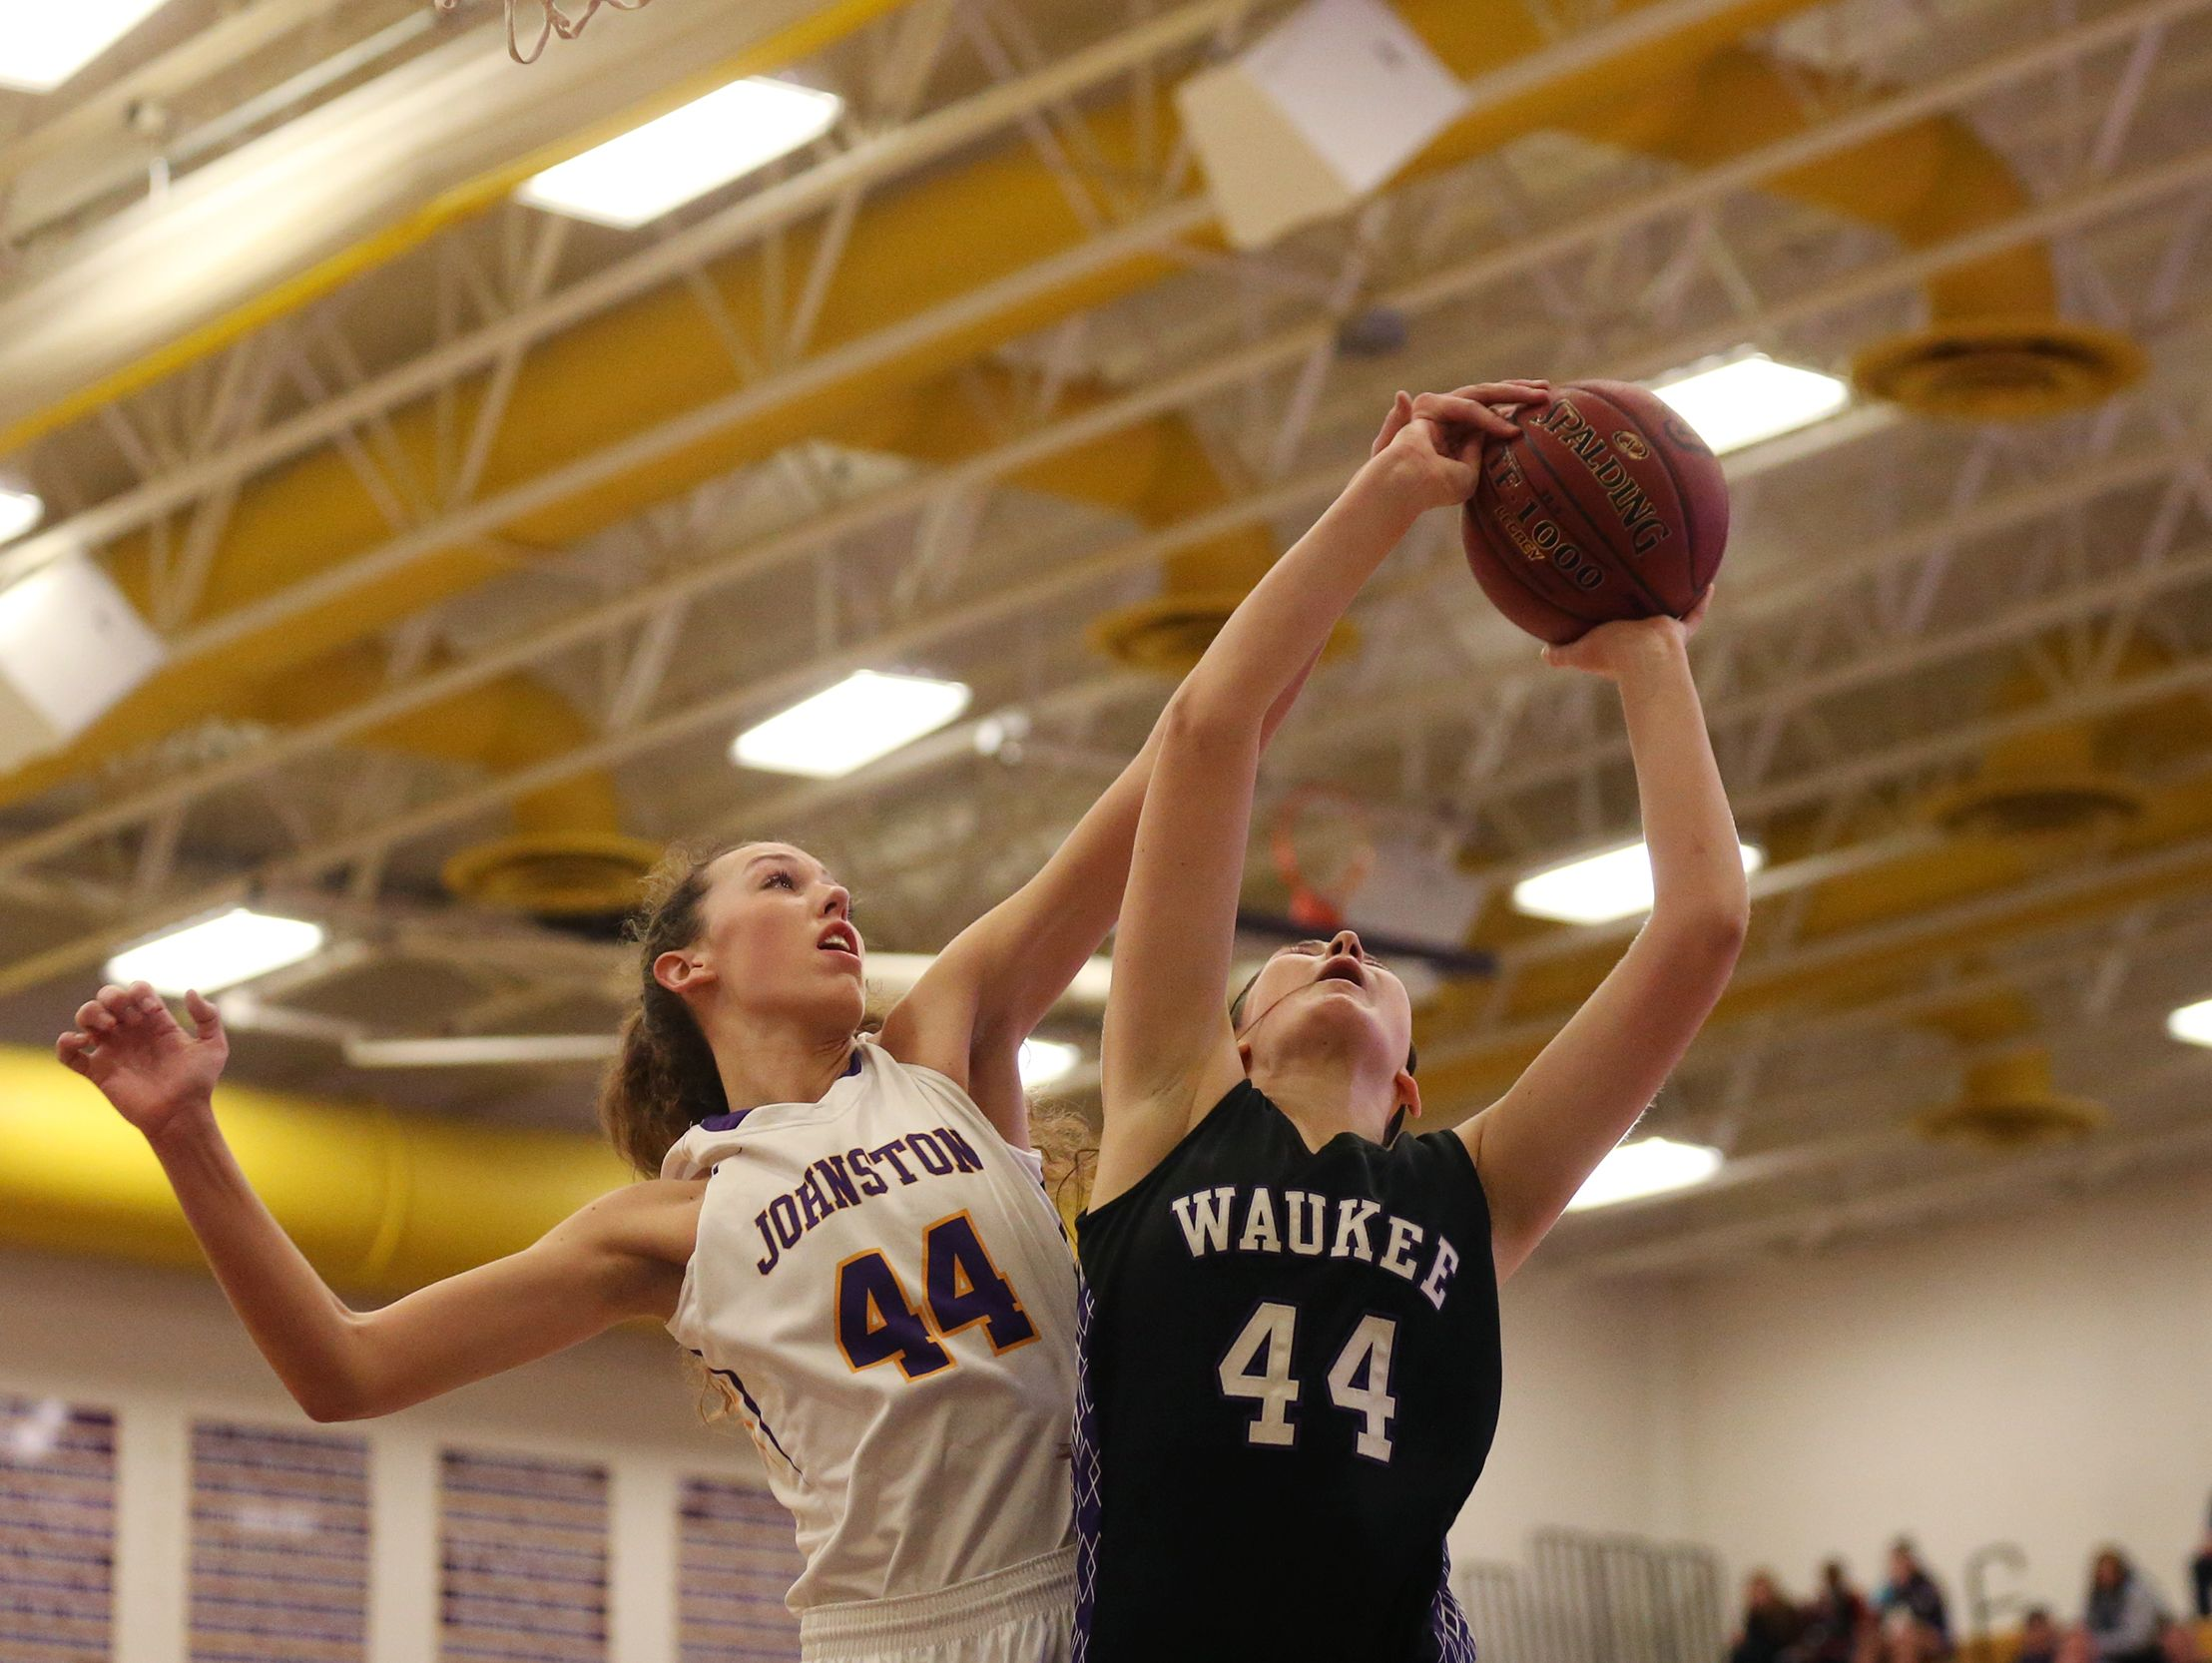 Johnston's Taryn Knuth tries to block a shot by Waukee's Paityn Rau during the Waukee at Johnston basketball game on Tuesday, Jan. 17 at Johnston High School. Waukee won in double overtime, 83-76.